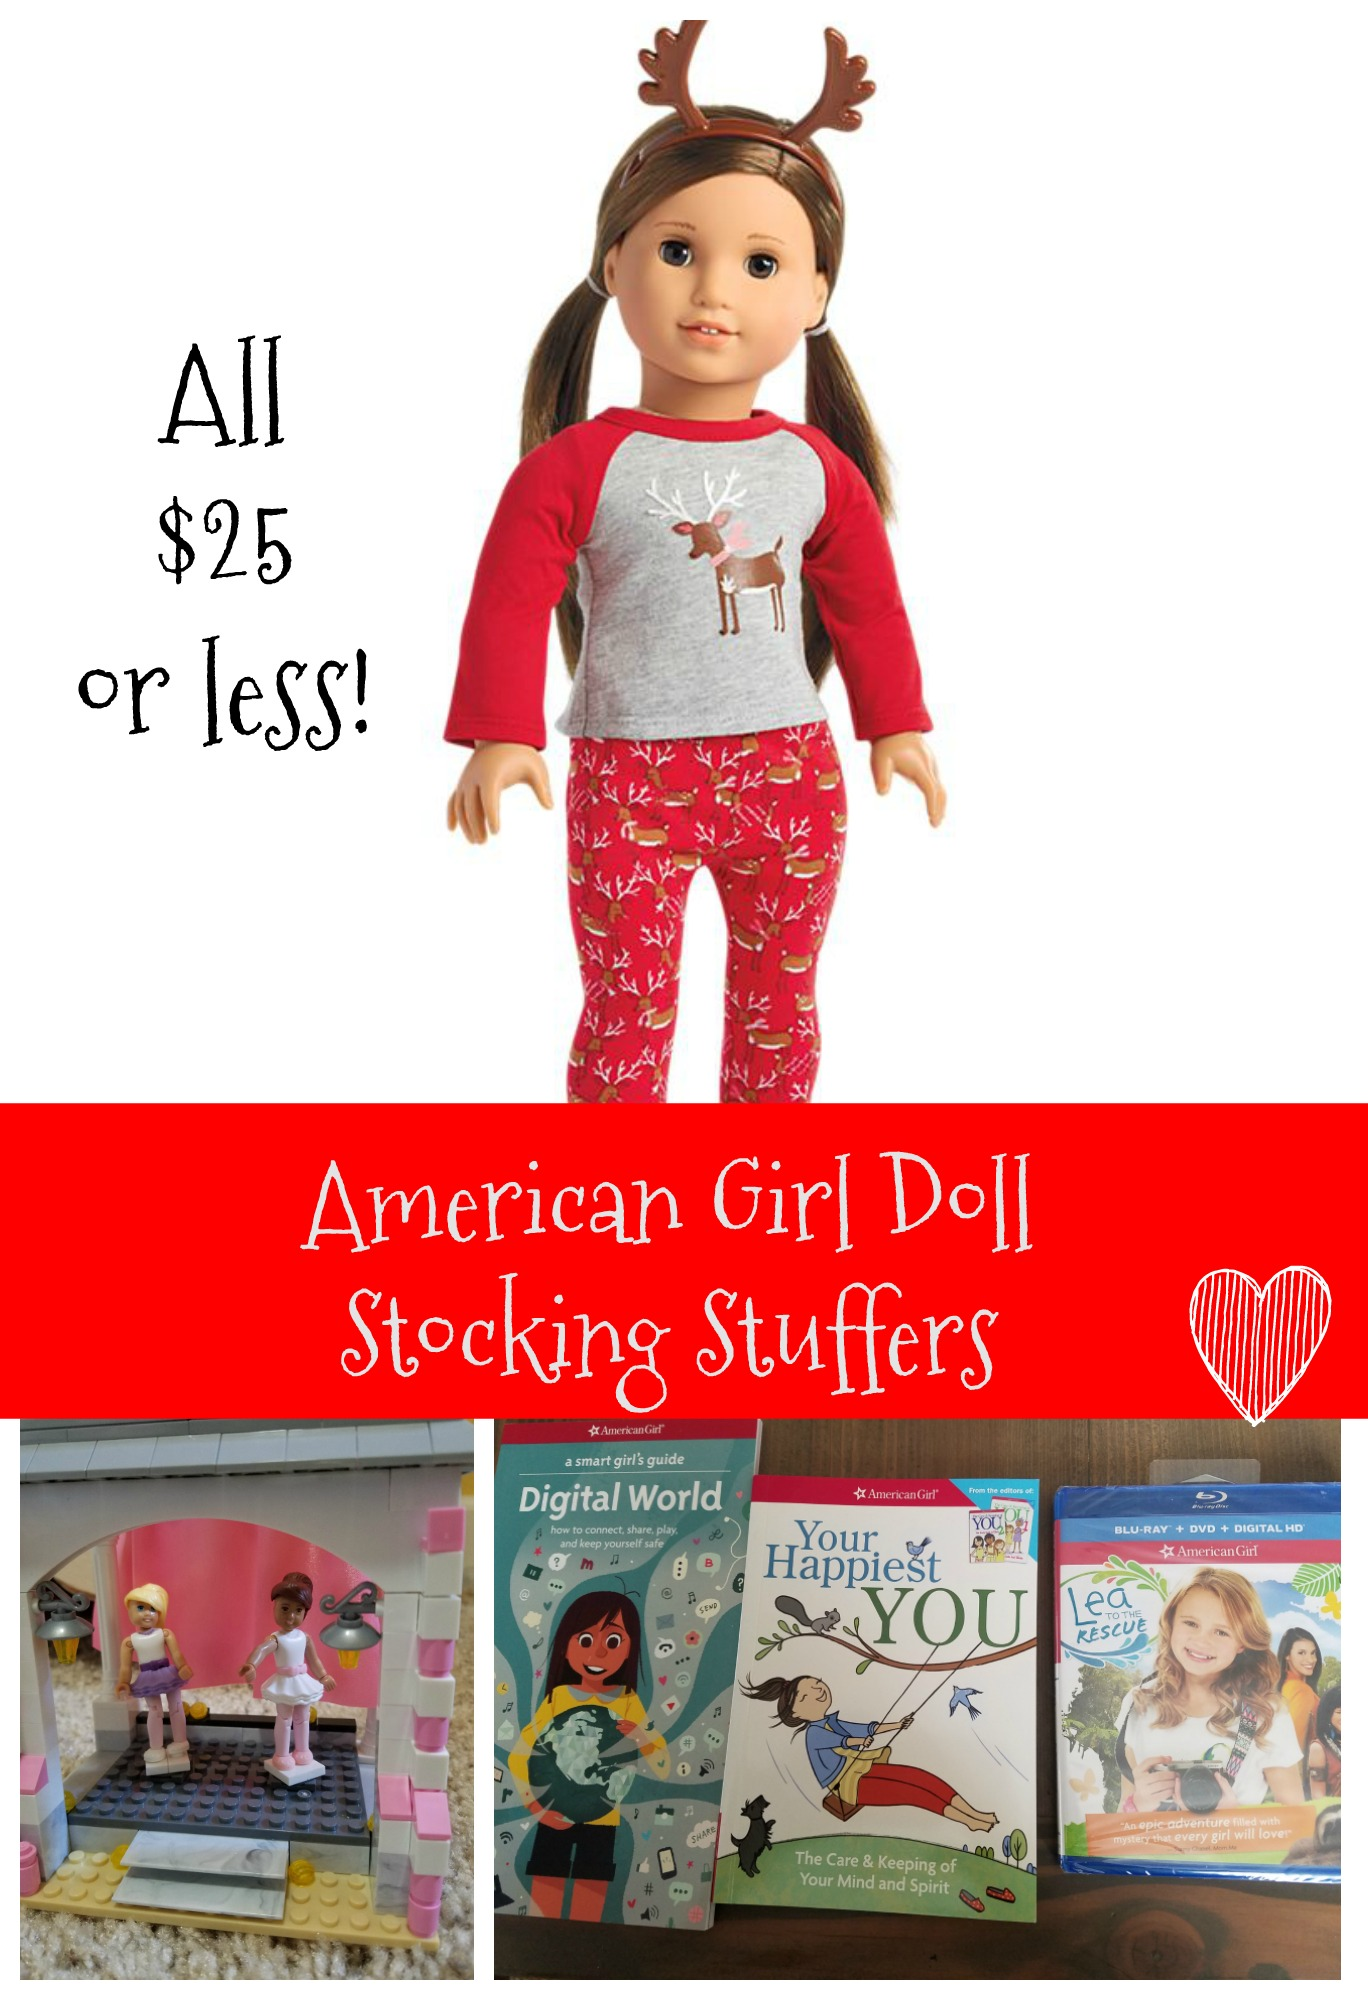 American Girl Doll Stocking STuffer ideas for under $25